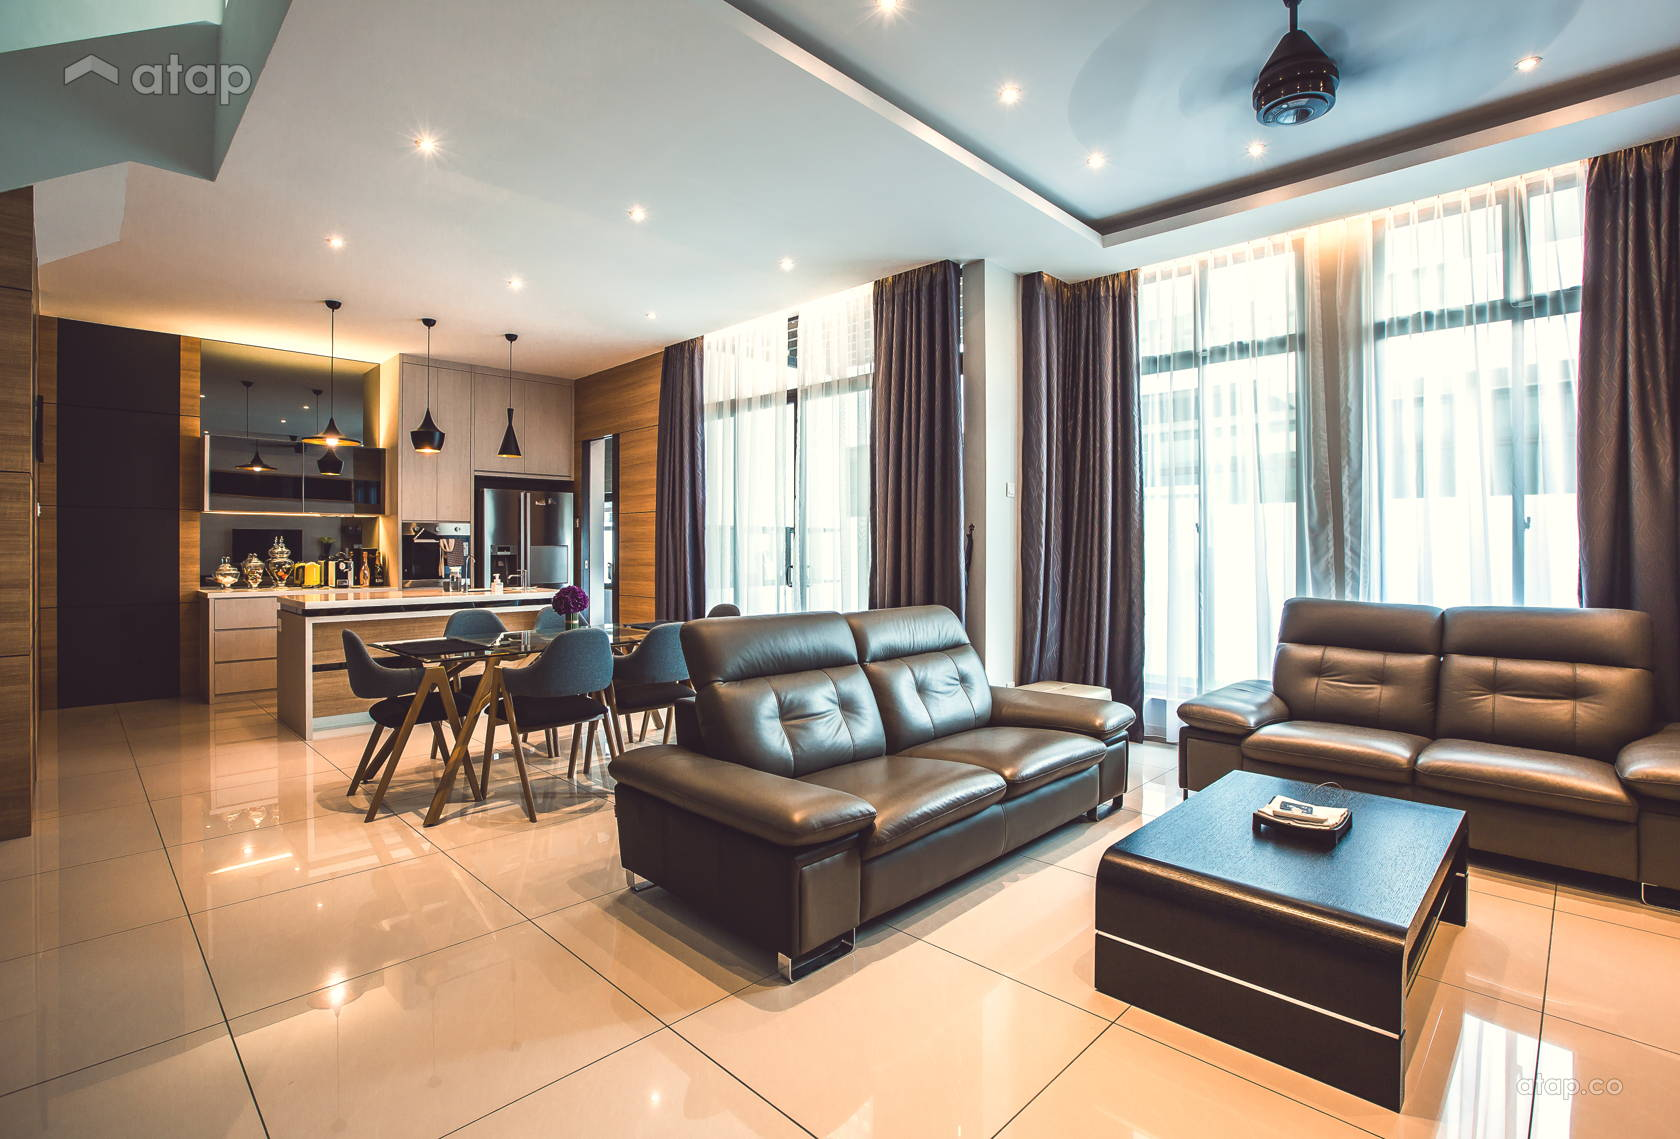 Contemporary Modern Kitchen Living Room @ Adda Height, Johor Bahru (1)